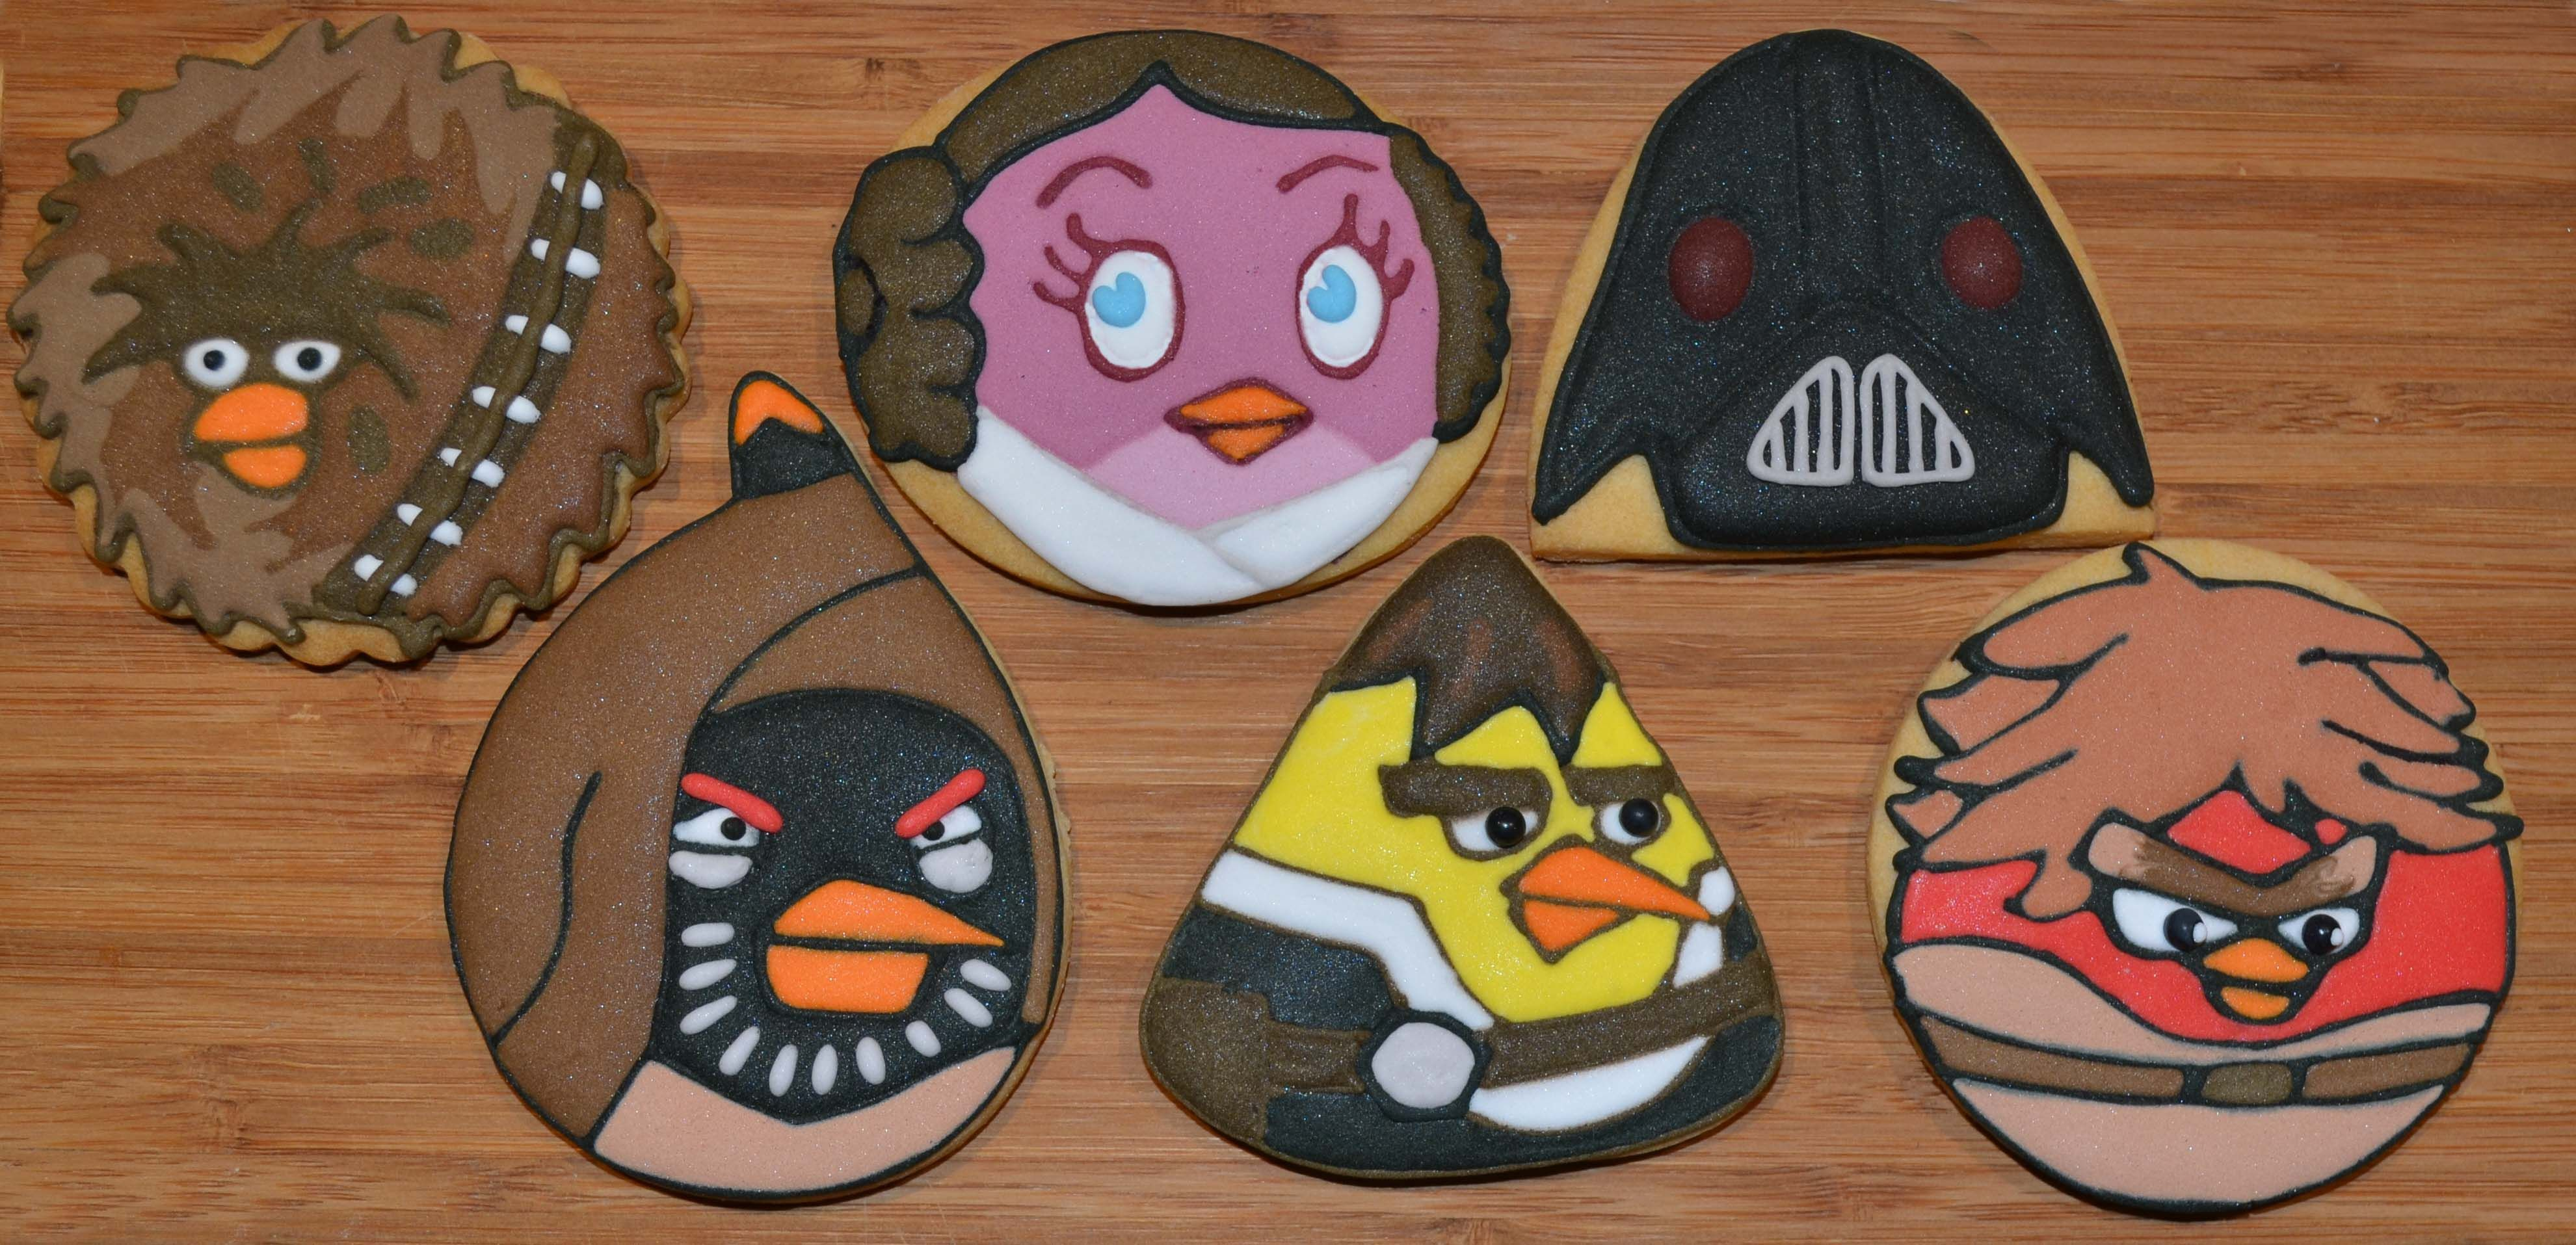 Star Wars Angry Bird Cookies